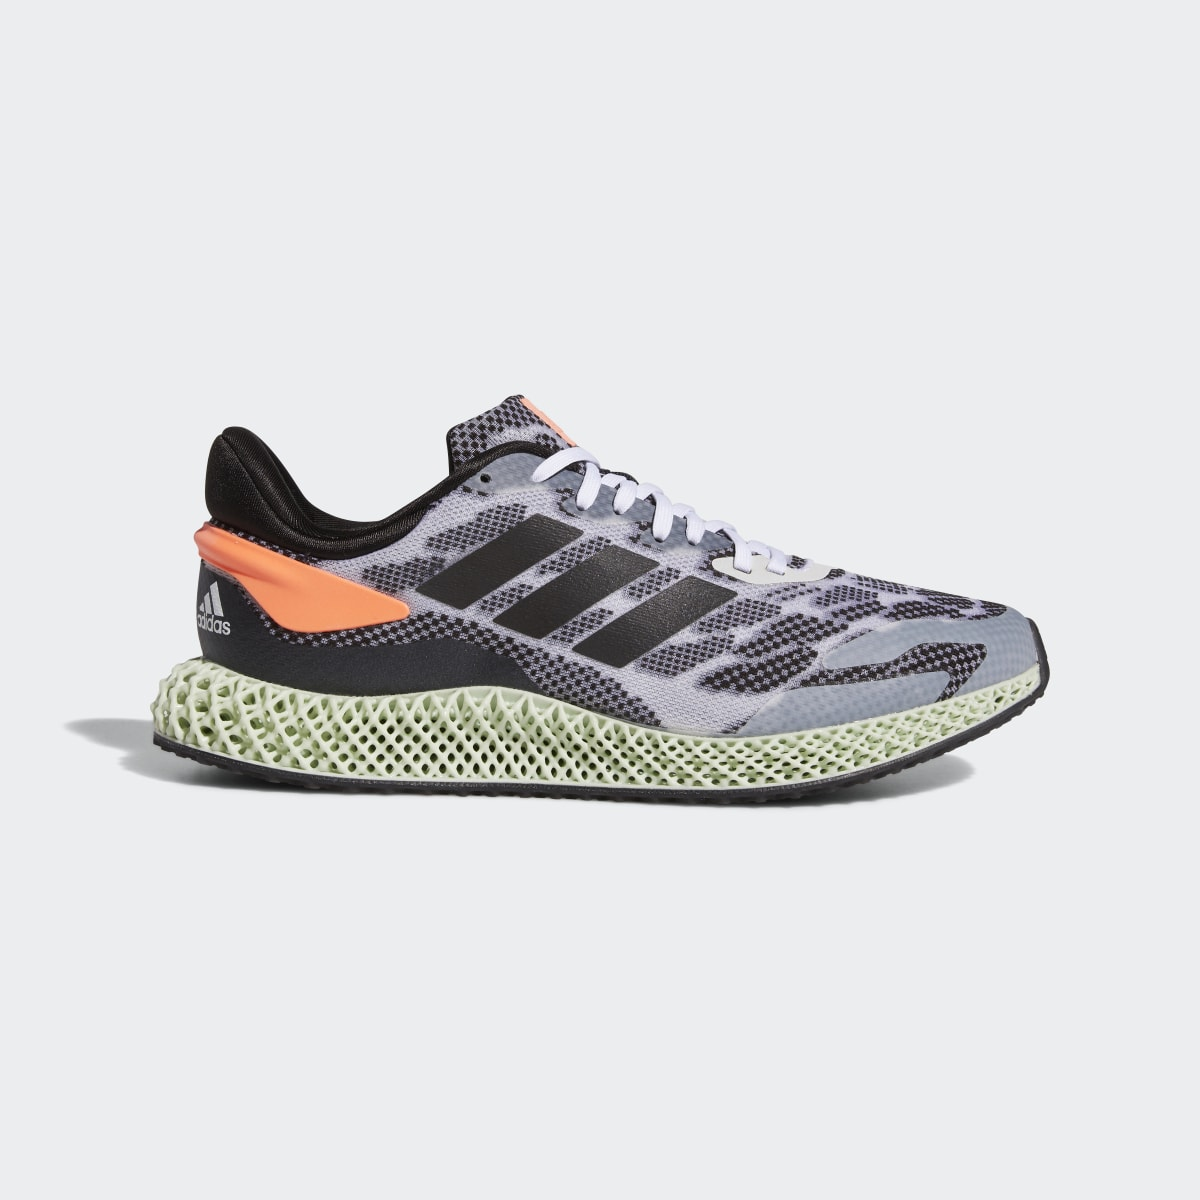 adidas official website - 53% remise